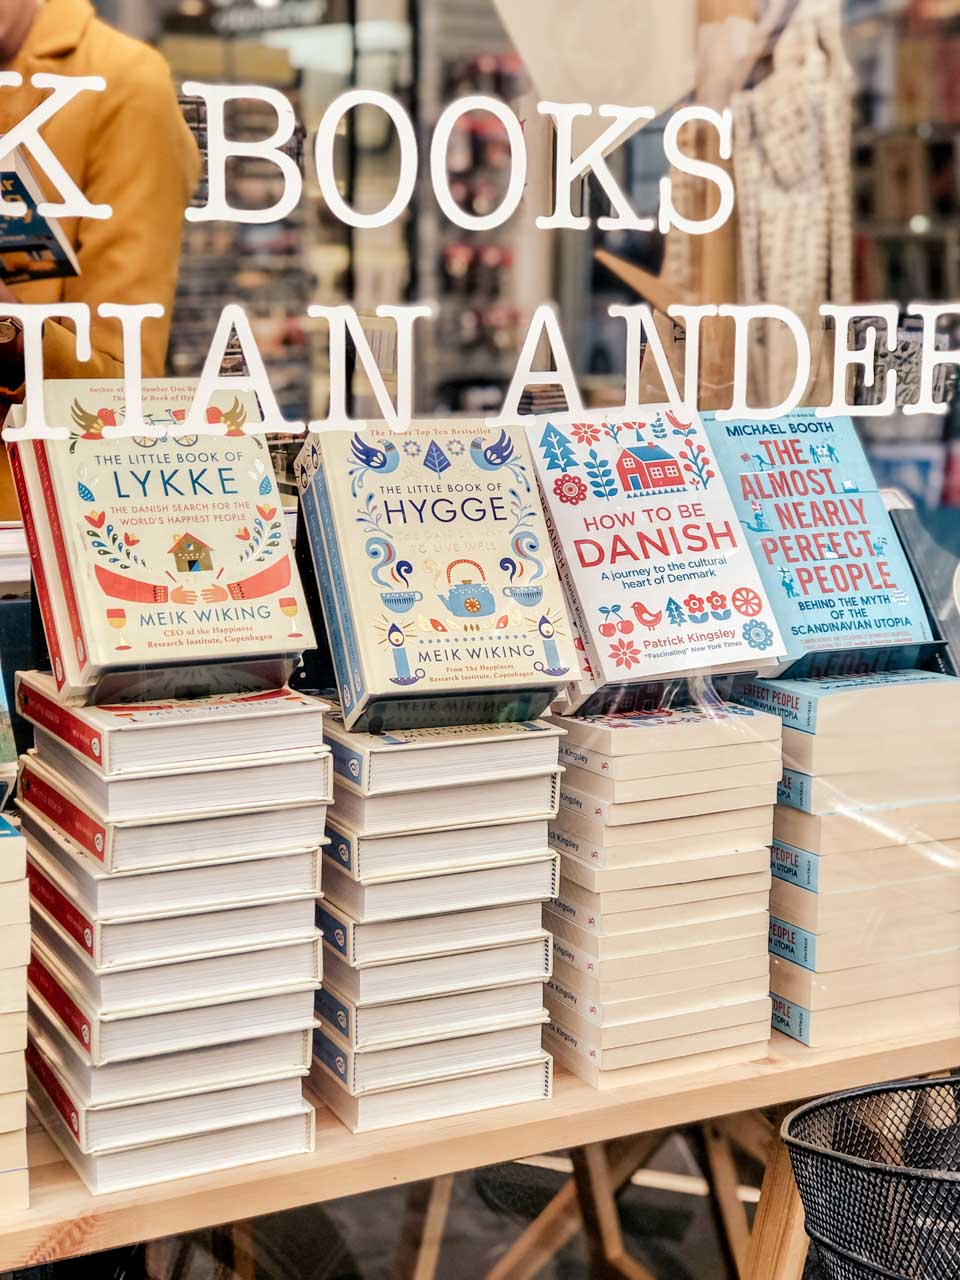 Books on display in a bookstore in Copenhagen, Denmark